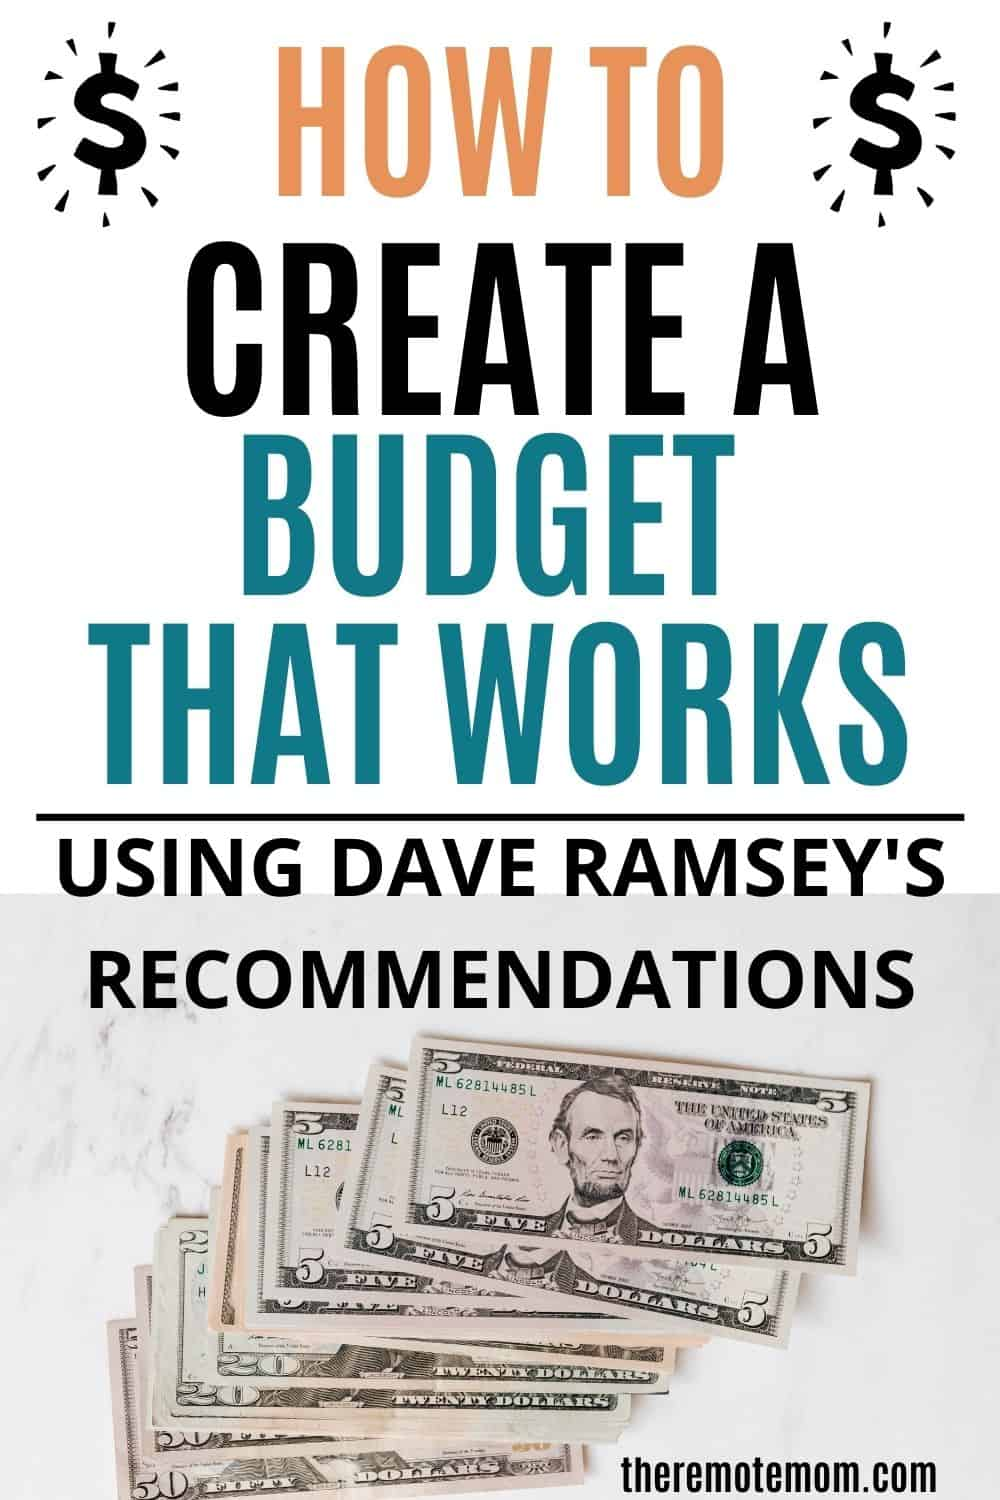 BUDGET PERCENTAGES DAVE RAMSEY